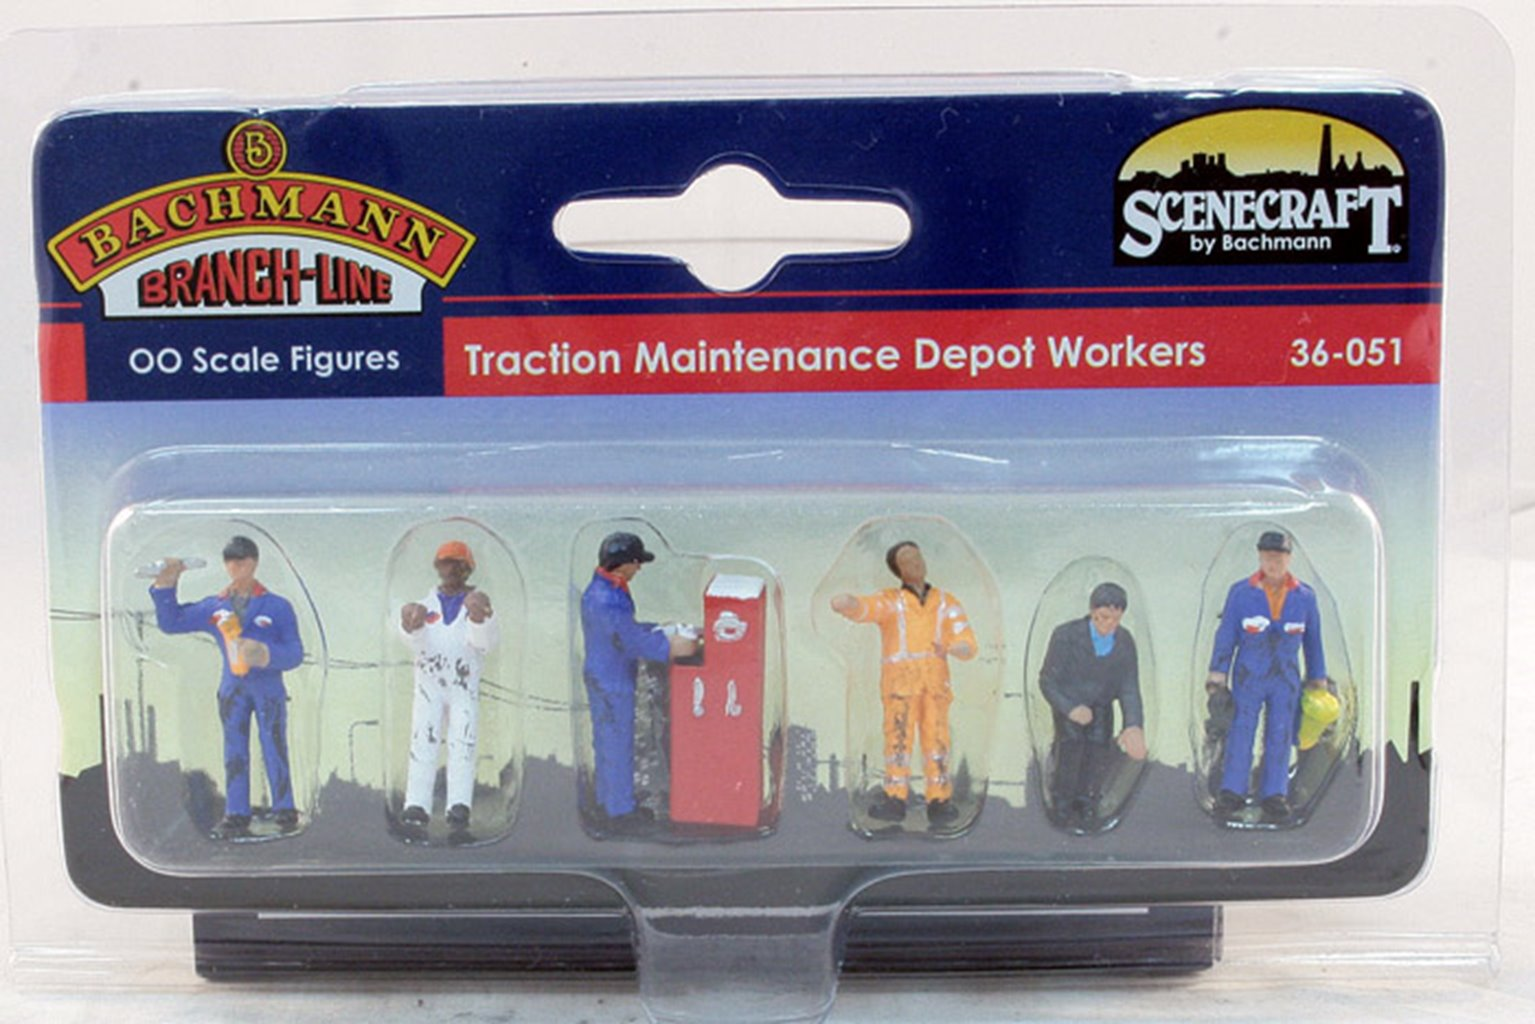 Figures - Traction Maintenance Depot Workers